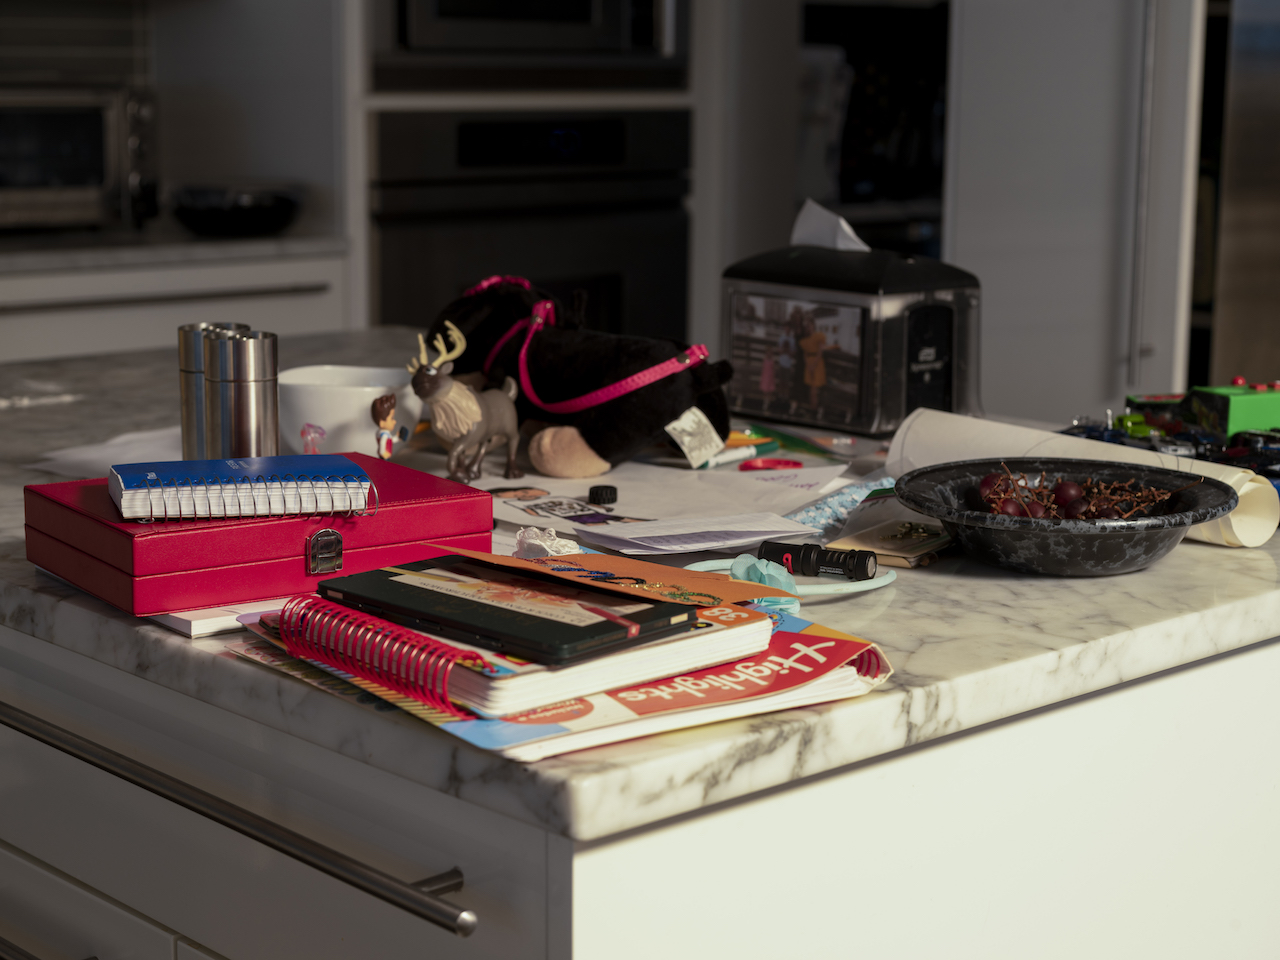 counter top in a kitchen covered in books, small childrens toys and other things